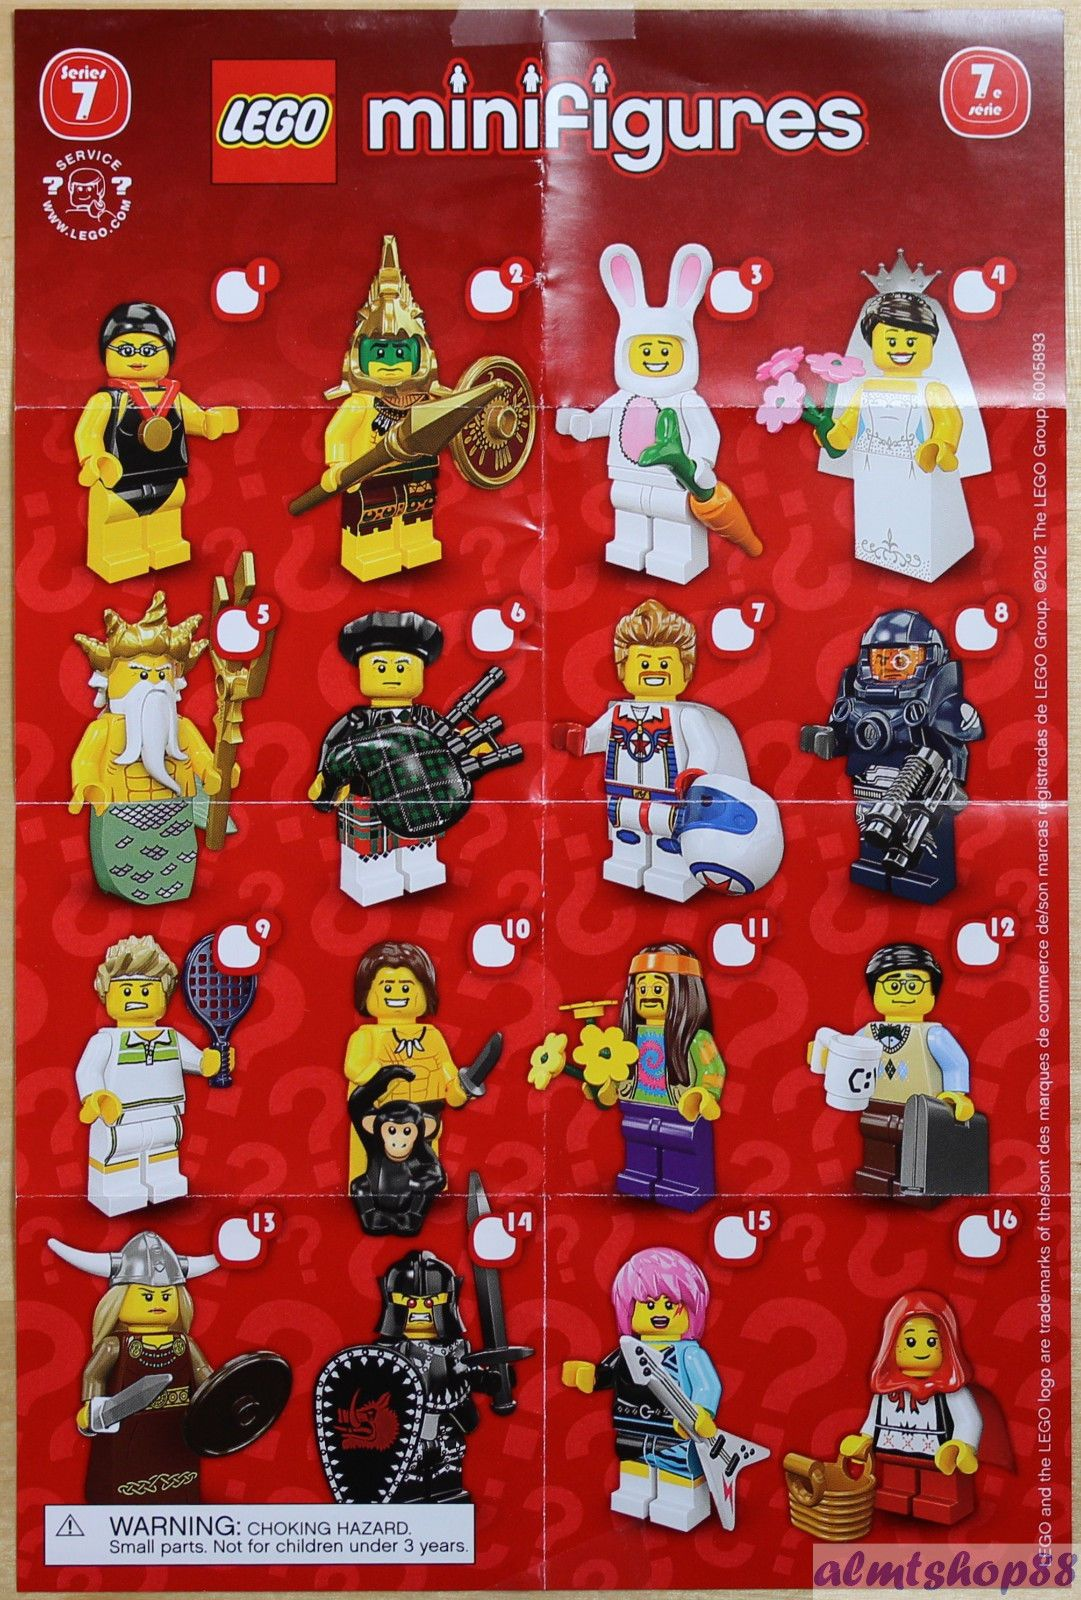 lego mini poster leaflet minifigures series 1 2 3 4 5 6 7 8 9 10 11 12 13 14 15 00 lego. Black Bedroom Furniture Sets. Home Design Ideas